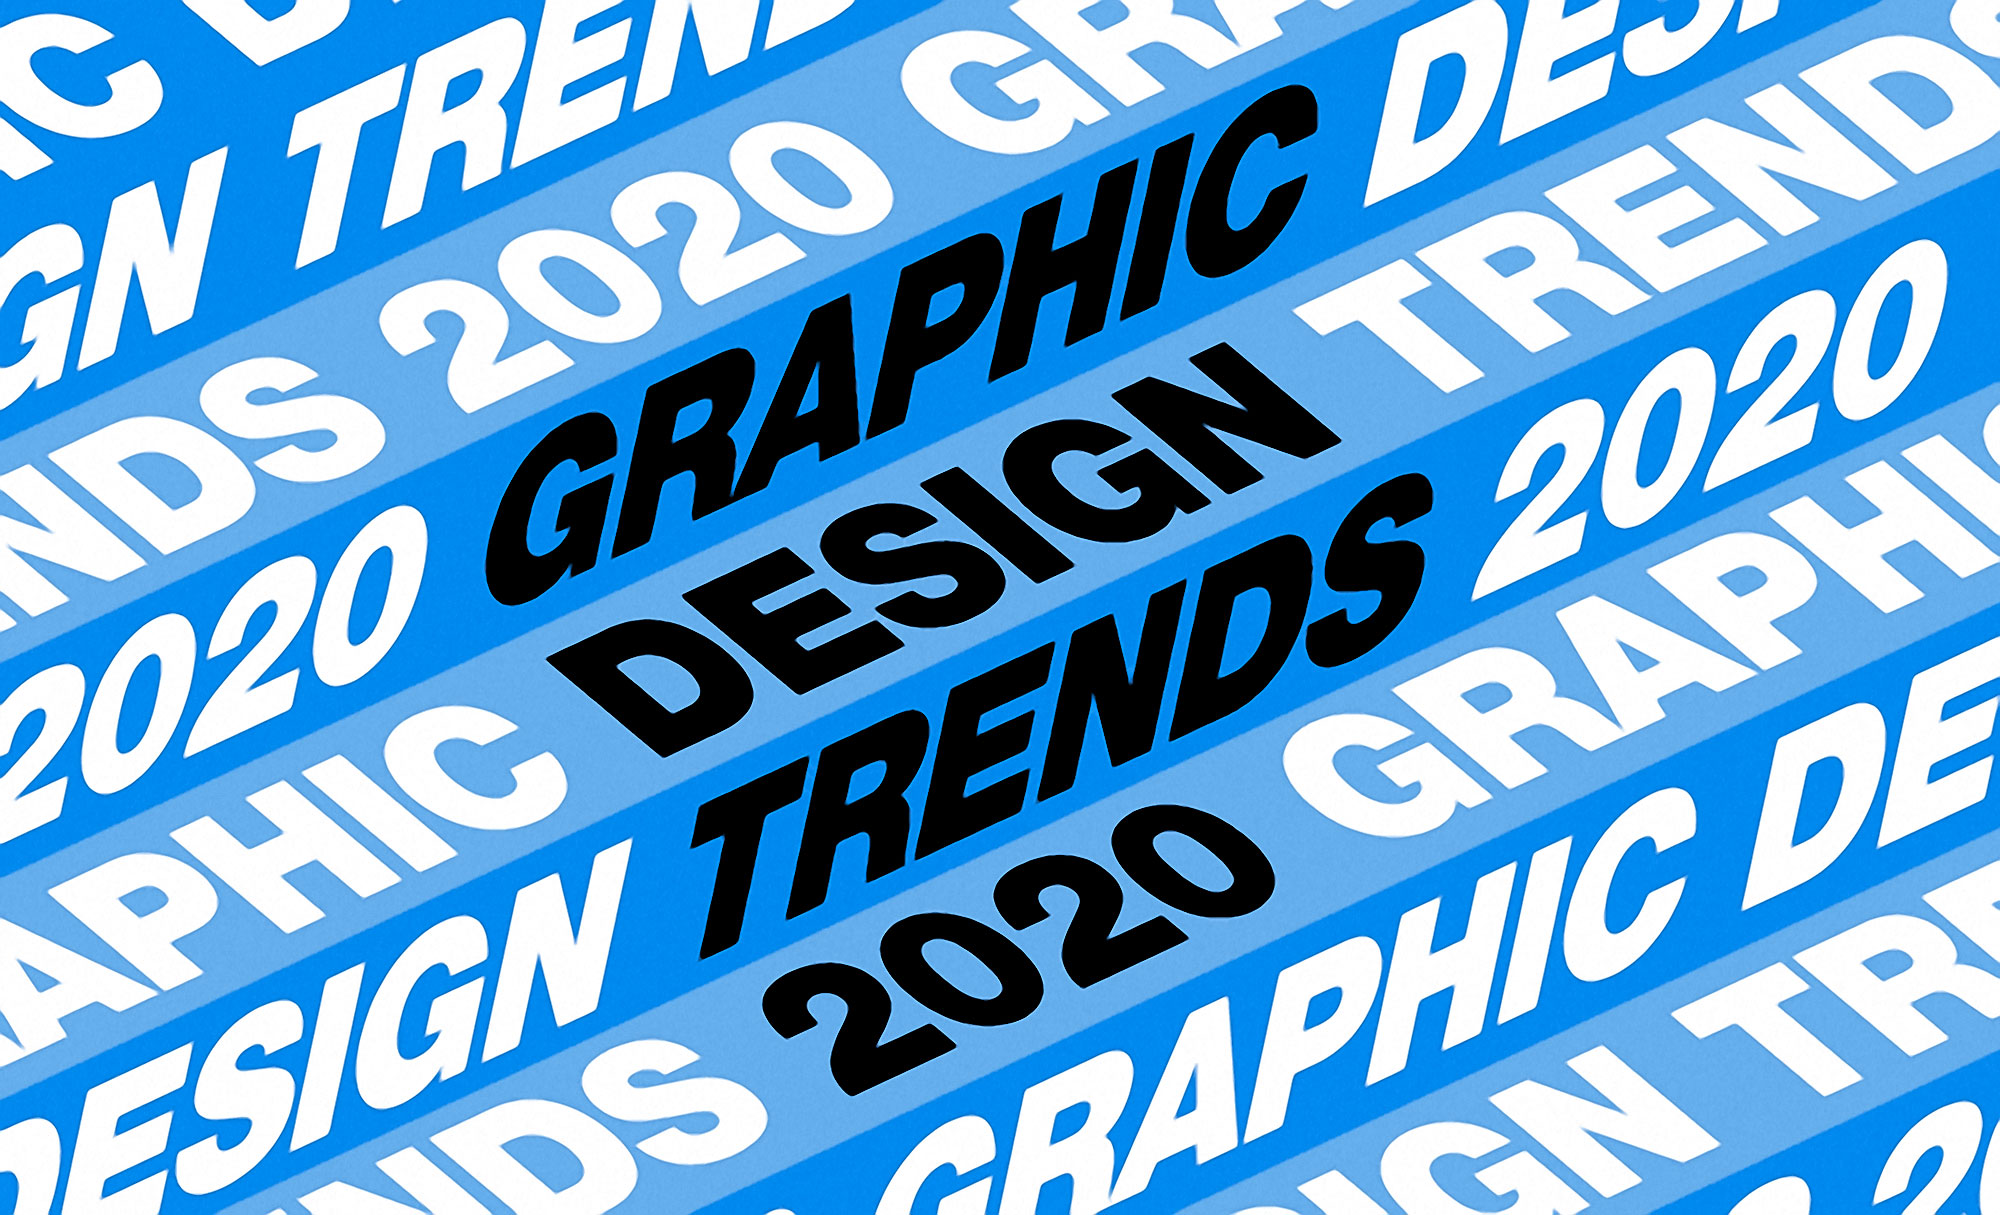 Graphic design trends in 2020